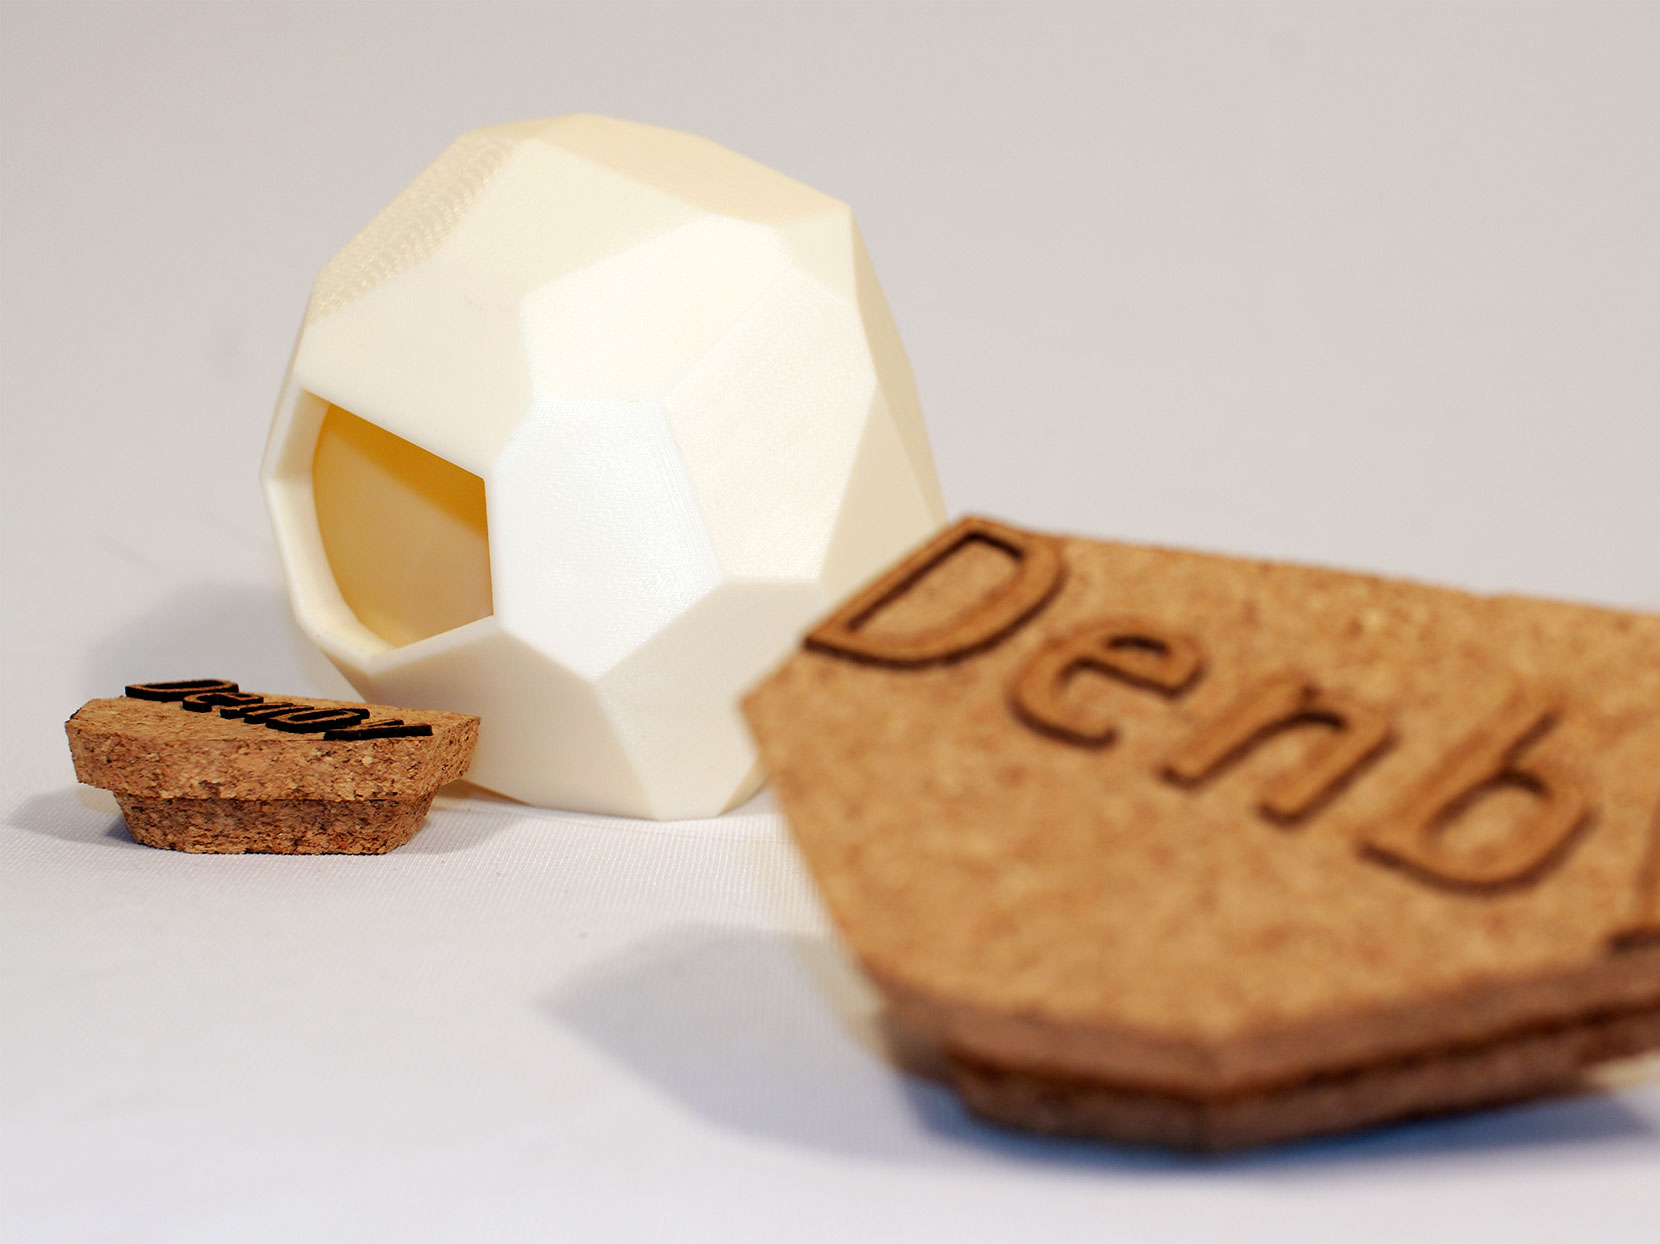 Denby Pottery biscuit barrel concept with faceted ceramic walls and thick cork lid